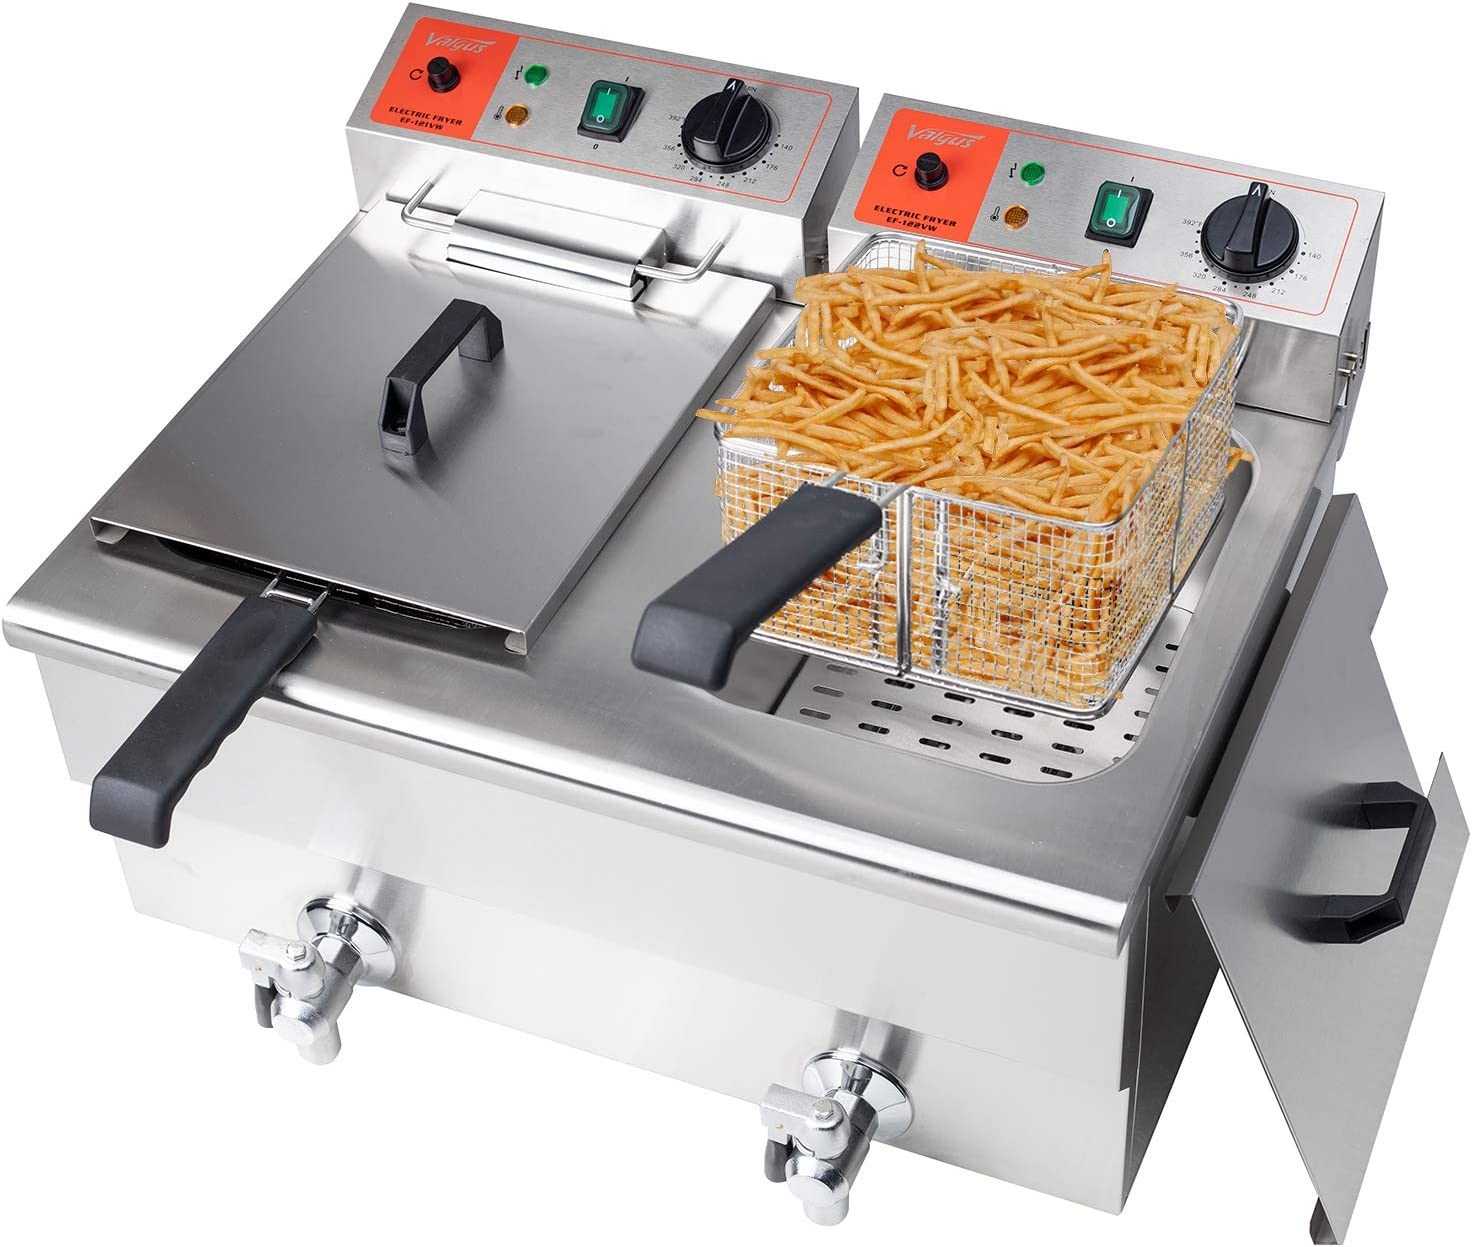 Valgus Dual Tanks Electric Deep Fryer 24L Large Capacity Stainless Steel Countertop Kitchen Frying Machine with Basket & Lid, Drain System for Restaurants Commercial Uses